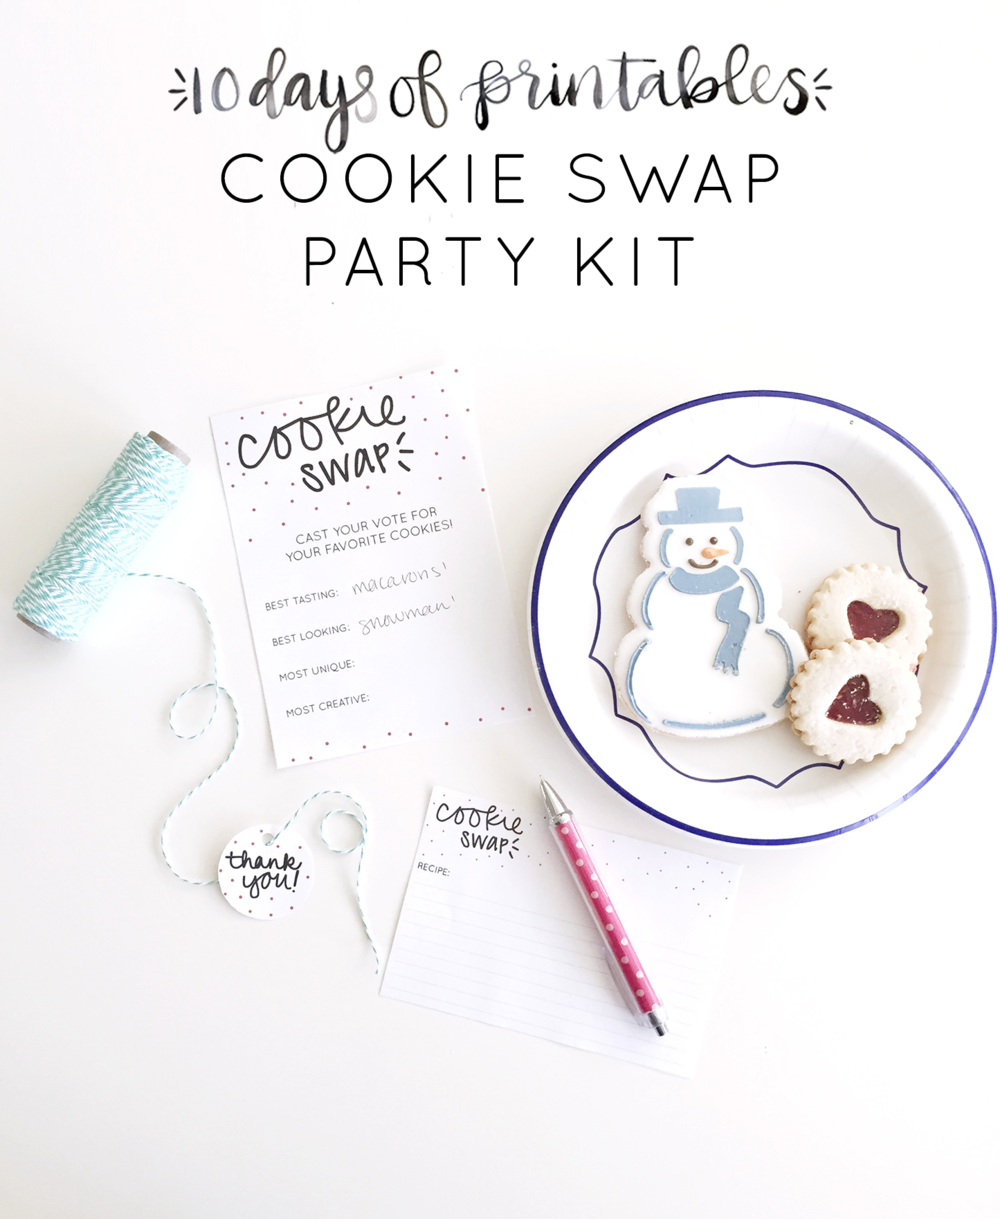 Hosting a cookie exchange? You're going to want to print the contents of this cookie swap kit that includes ballot cards for voting for your favorite cookie, thank you tags to box up everyone's favorite cookies, and recipe cards to share recipes! Get these and other fun holiday printables from Hey Love Designs' 10 Days of Printables!